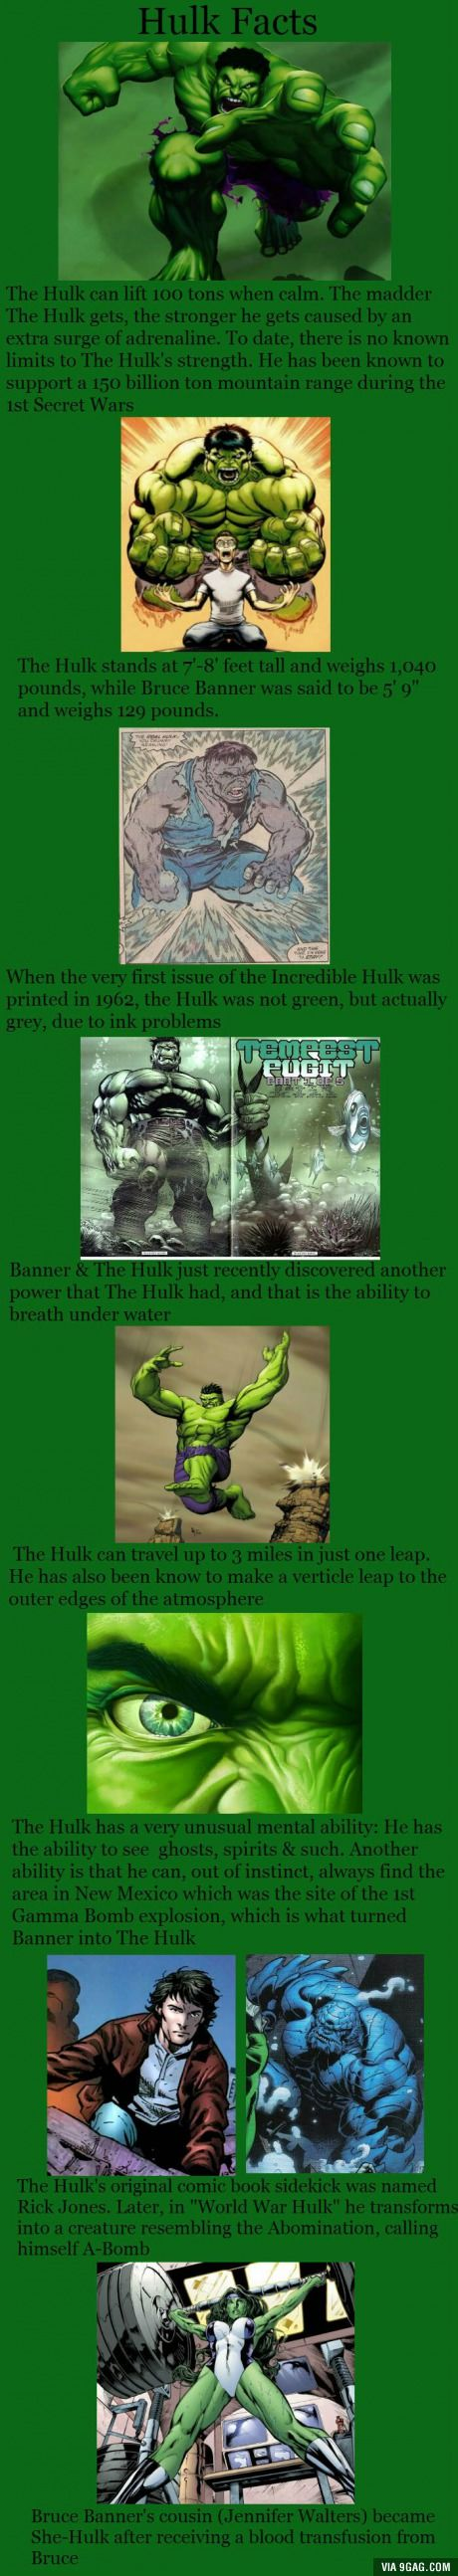 I've actually read the first 6 hulk comics and they are so freaking cool!